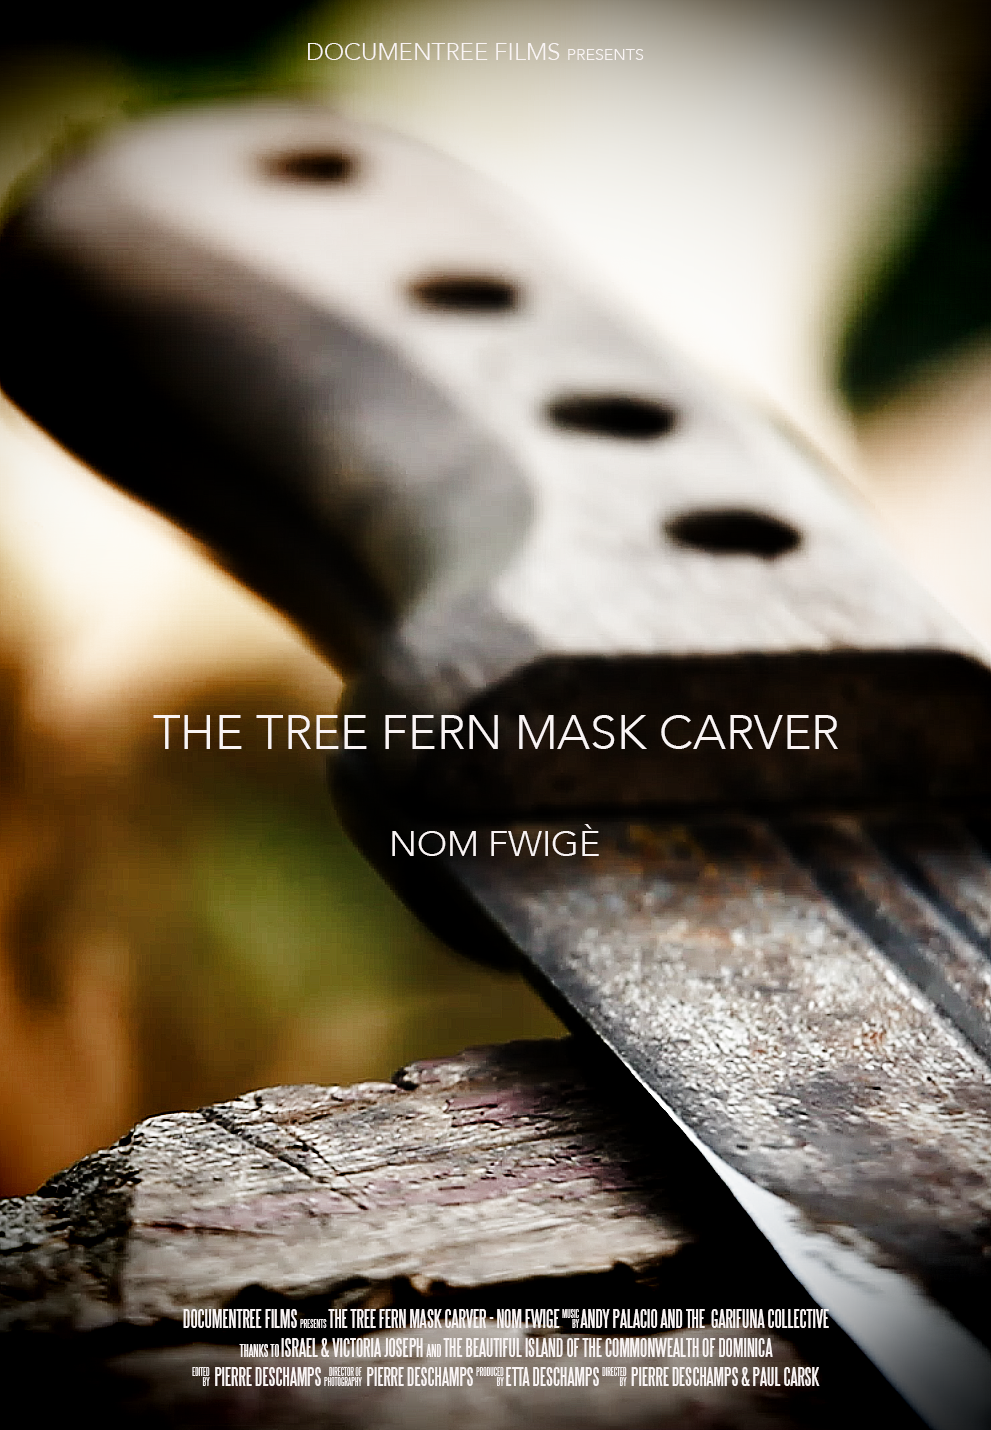 THE TREE FERN MASK CARVER AND HIS WIFE